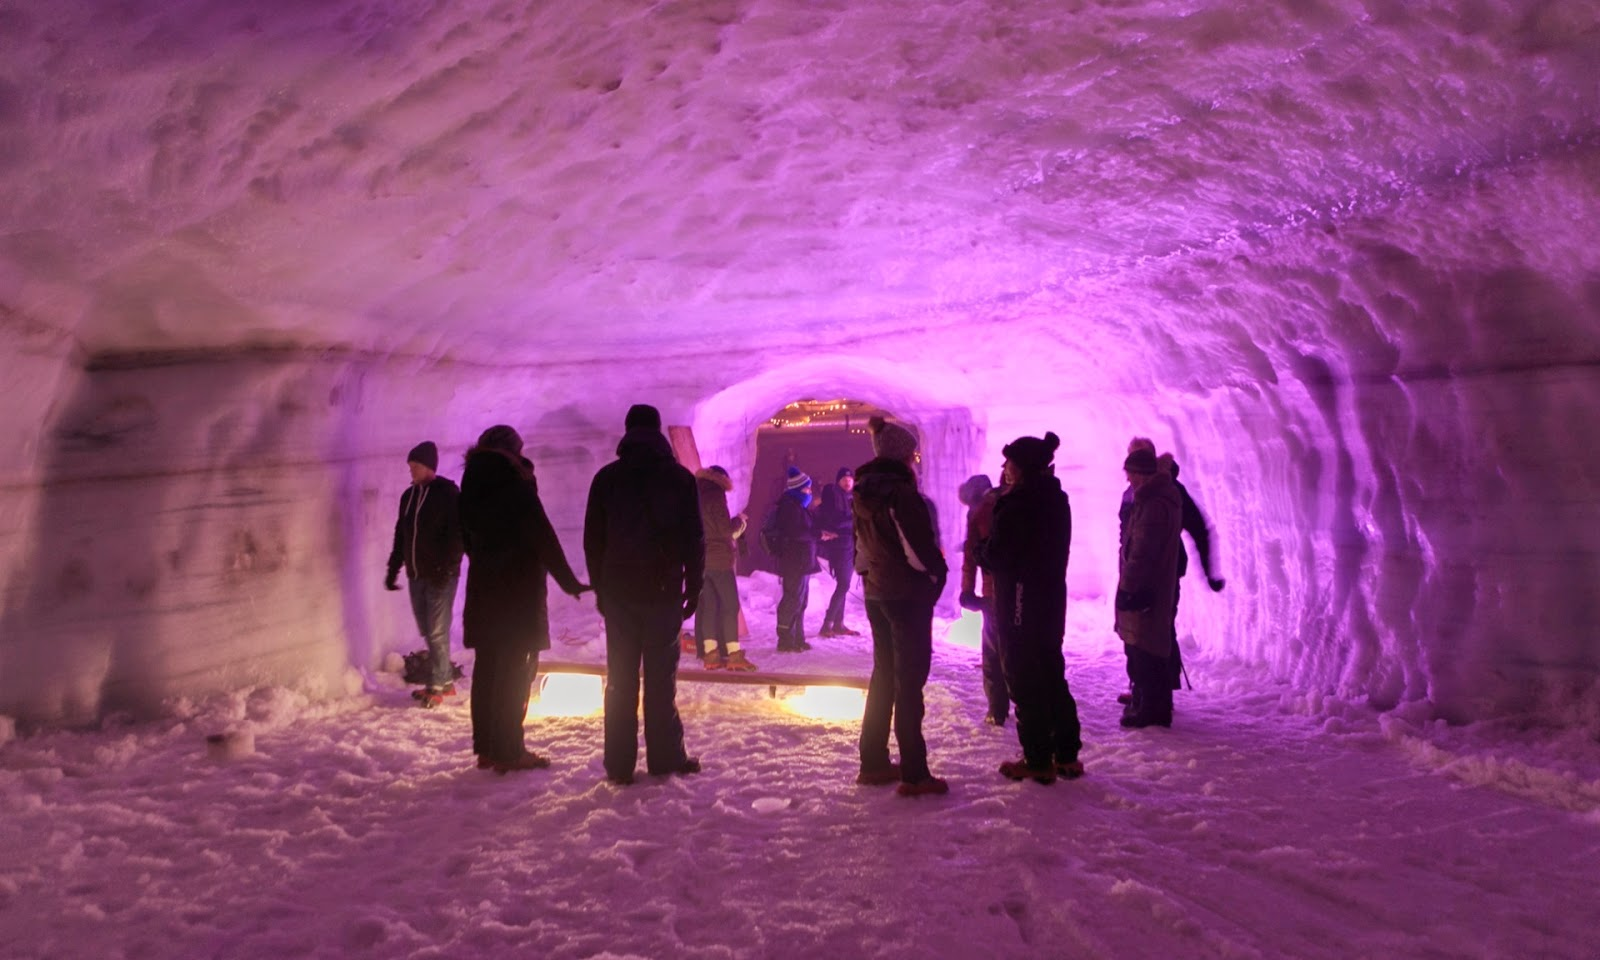 Icecave Iceland - Ice Caves & Tunnels in Langjökull - Iceland Ice Cave Tour